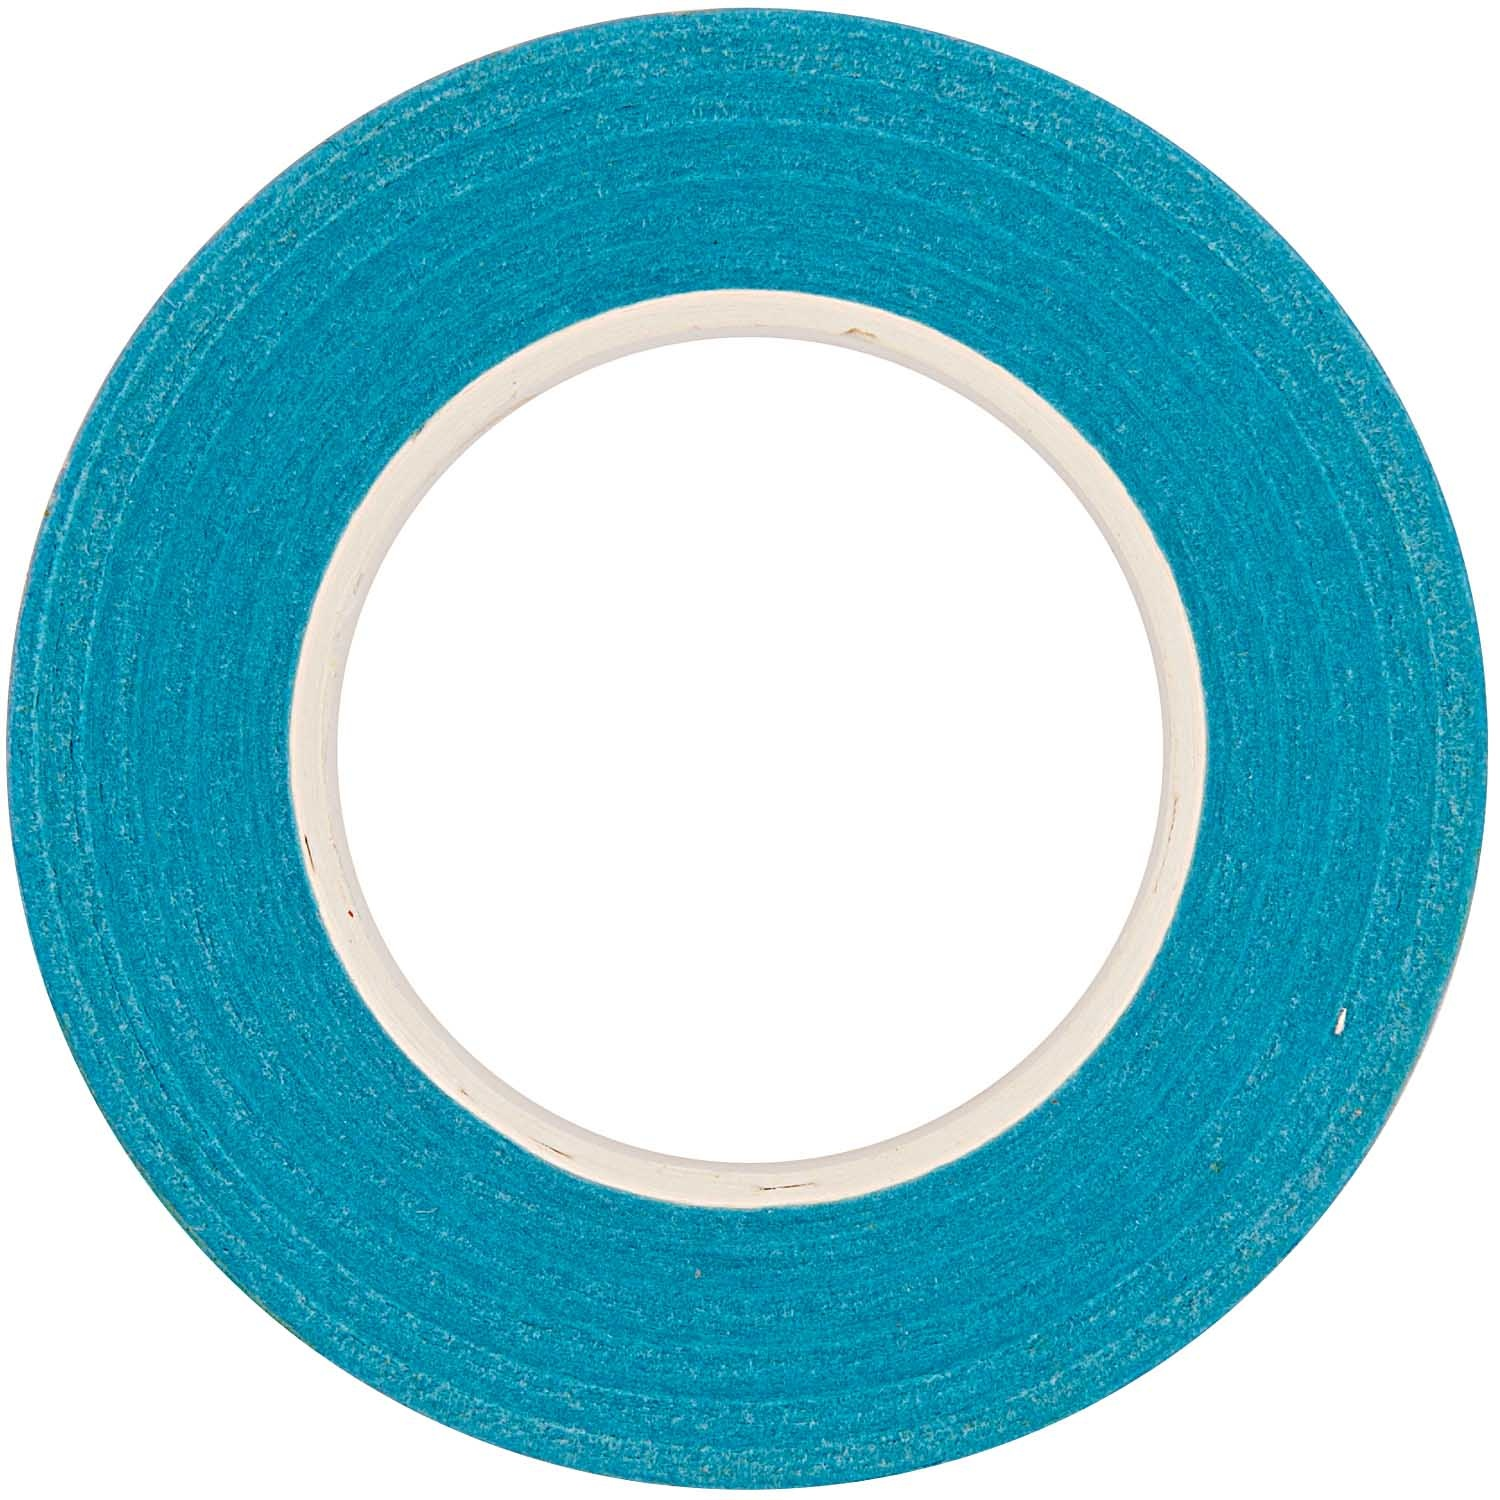 Rico NAY FLORAL CREPE TAPE, TURQUOISE  12 MM X 27,5 M